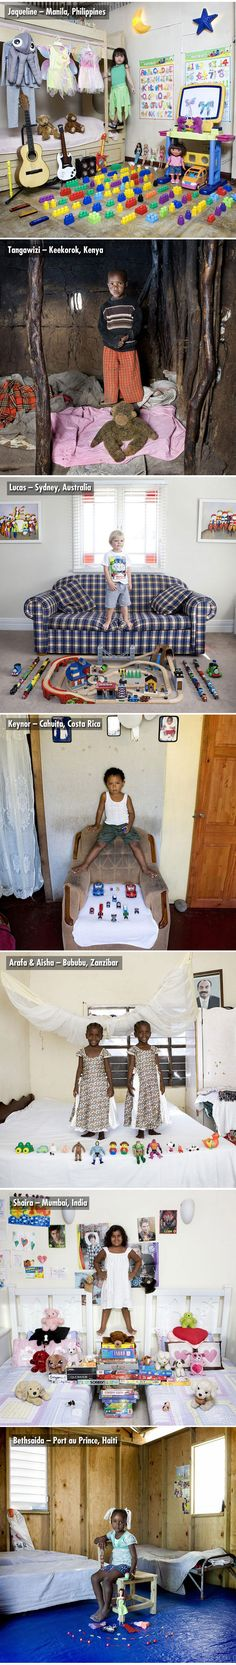 Children From Around the World with their Most Prized Possessions ...2